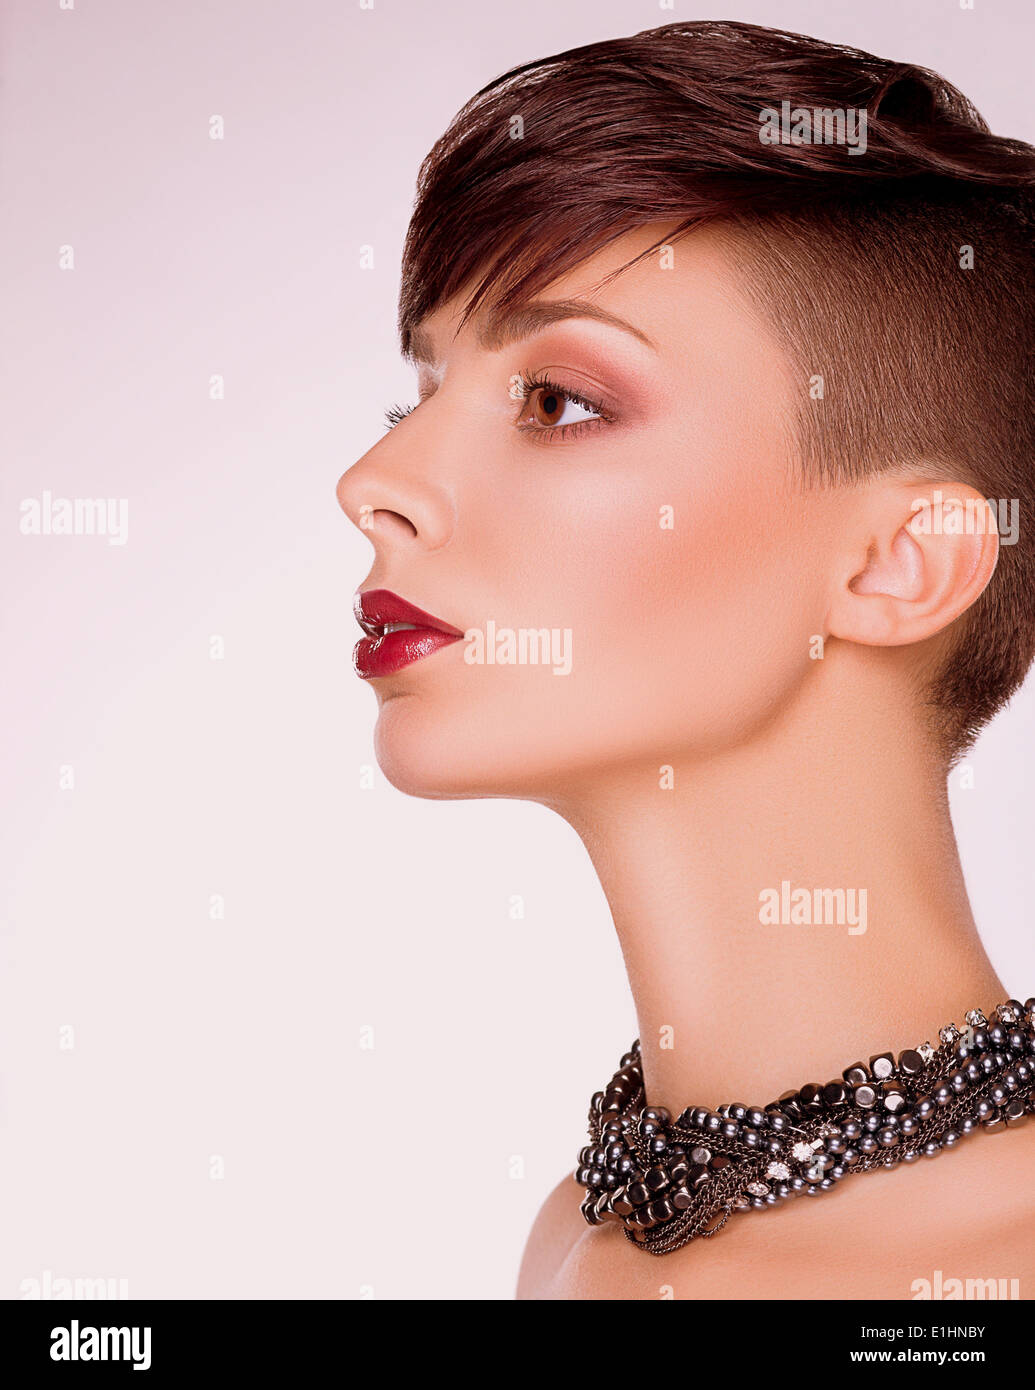 Neatness. Profile of Imposing Short Hair Woman. Bob Haircut - Stock Image